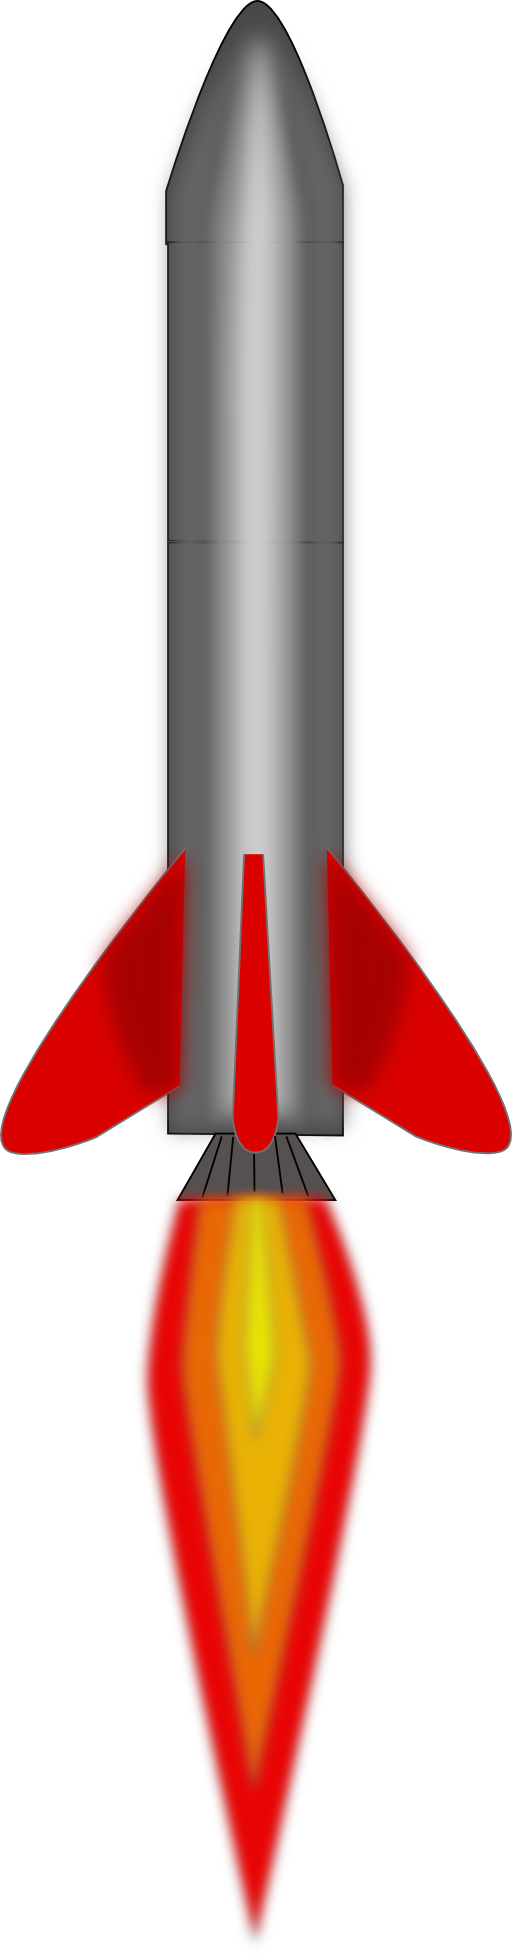 clipart rocket . Free cliparts that you can download to you computer ...